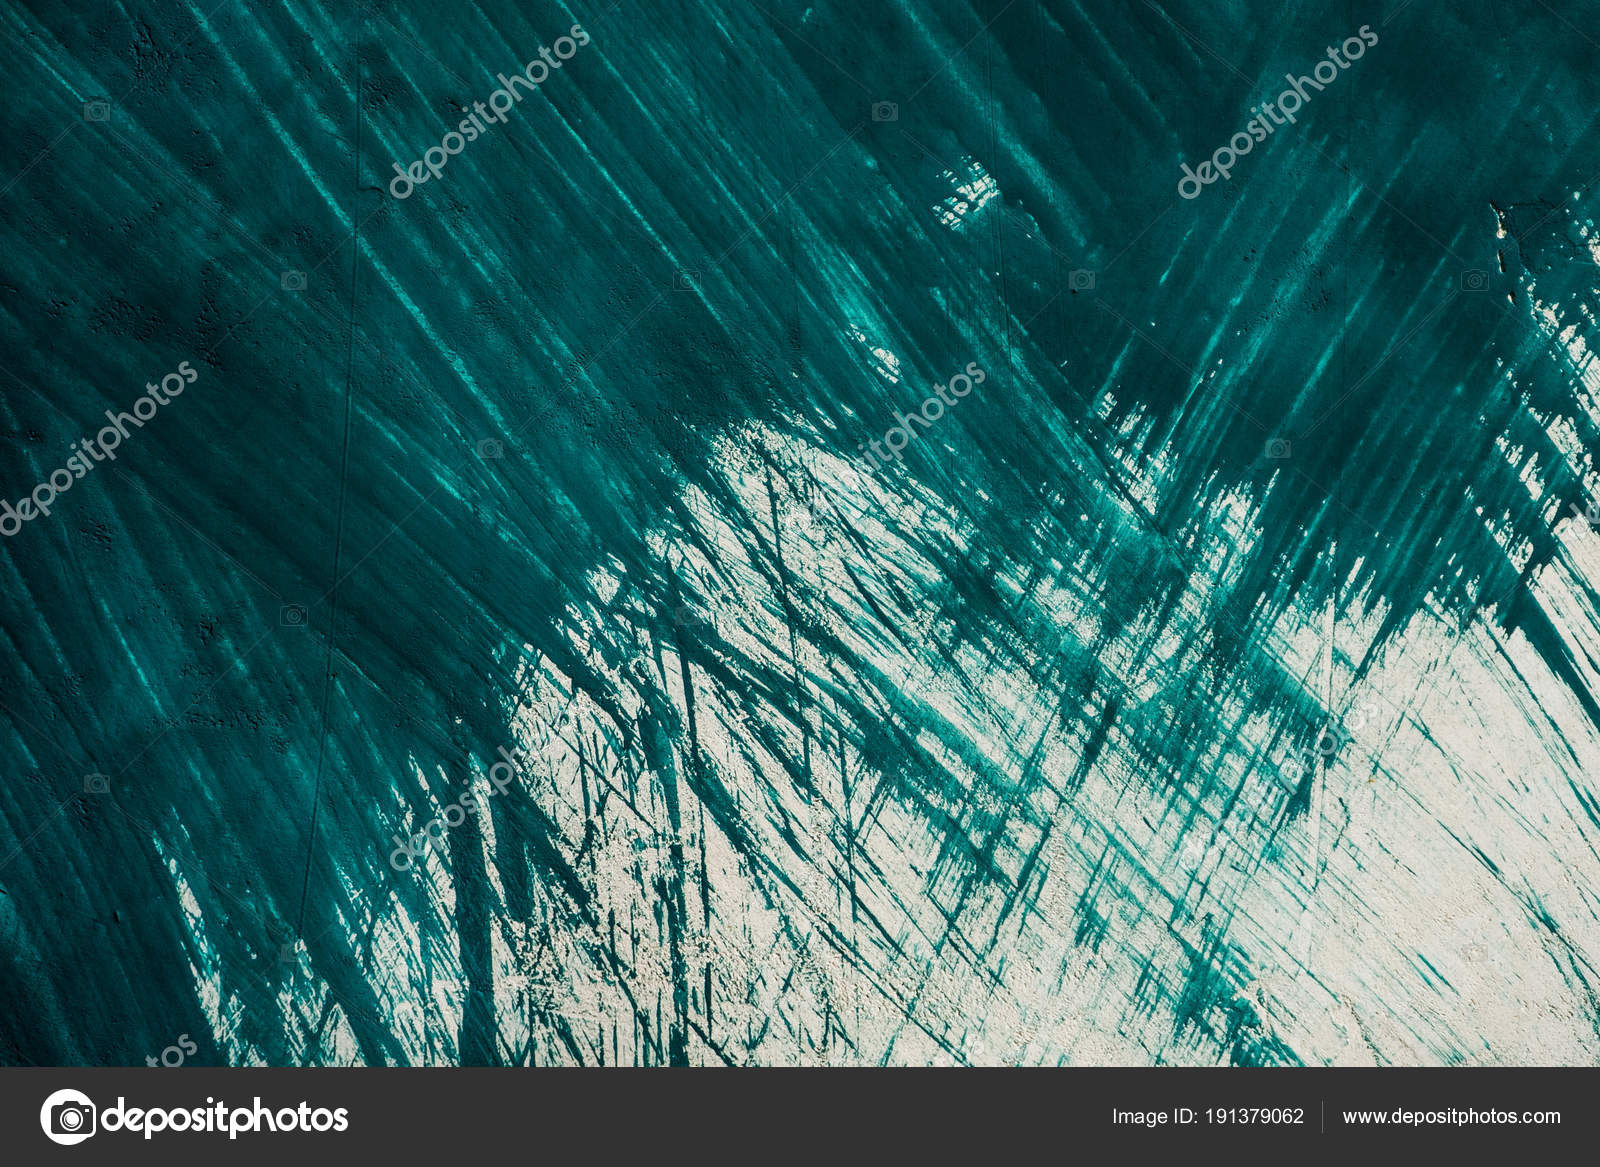 White Textured Wall Painted Rough Brush Strokes Blue Paint Stock